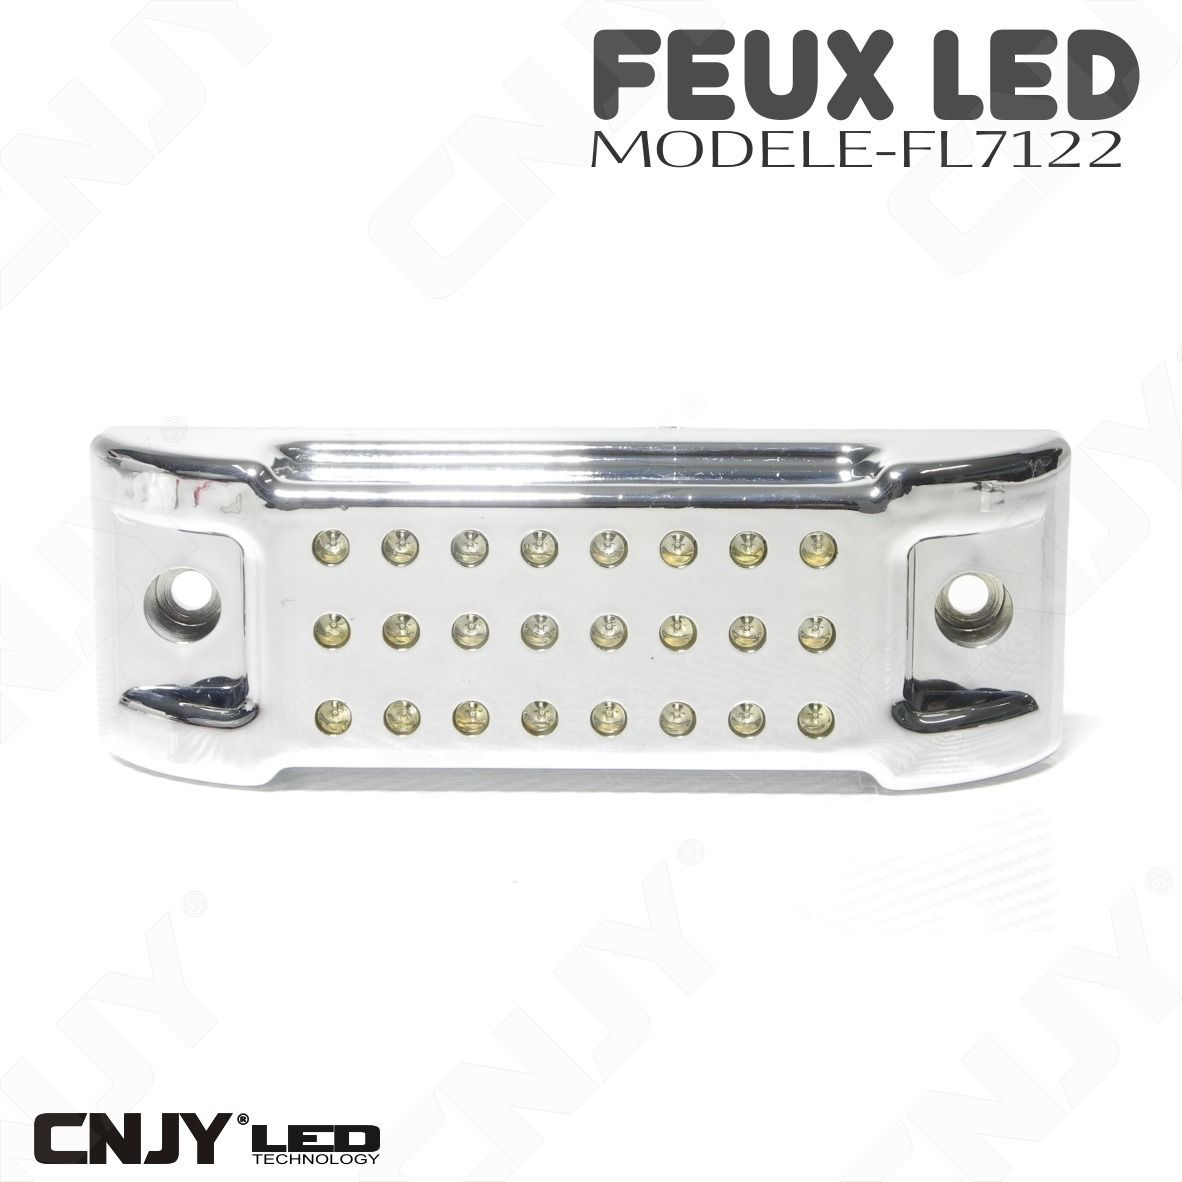 feux,stop,position,a,led,rouge,orange,12v,24v,etanche,ip68,pour,auto,moto,quad,camion,remorque,CHOPPER,MOTARD